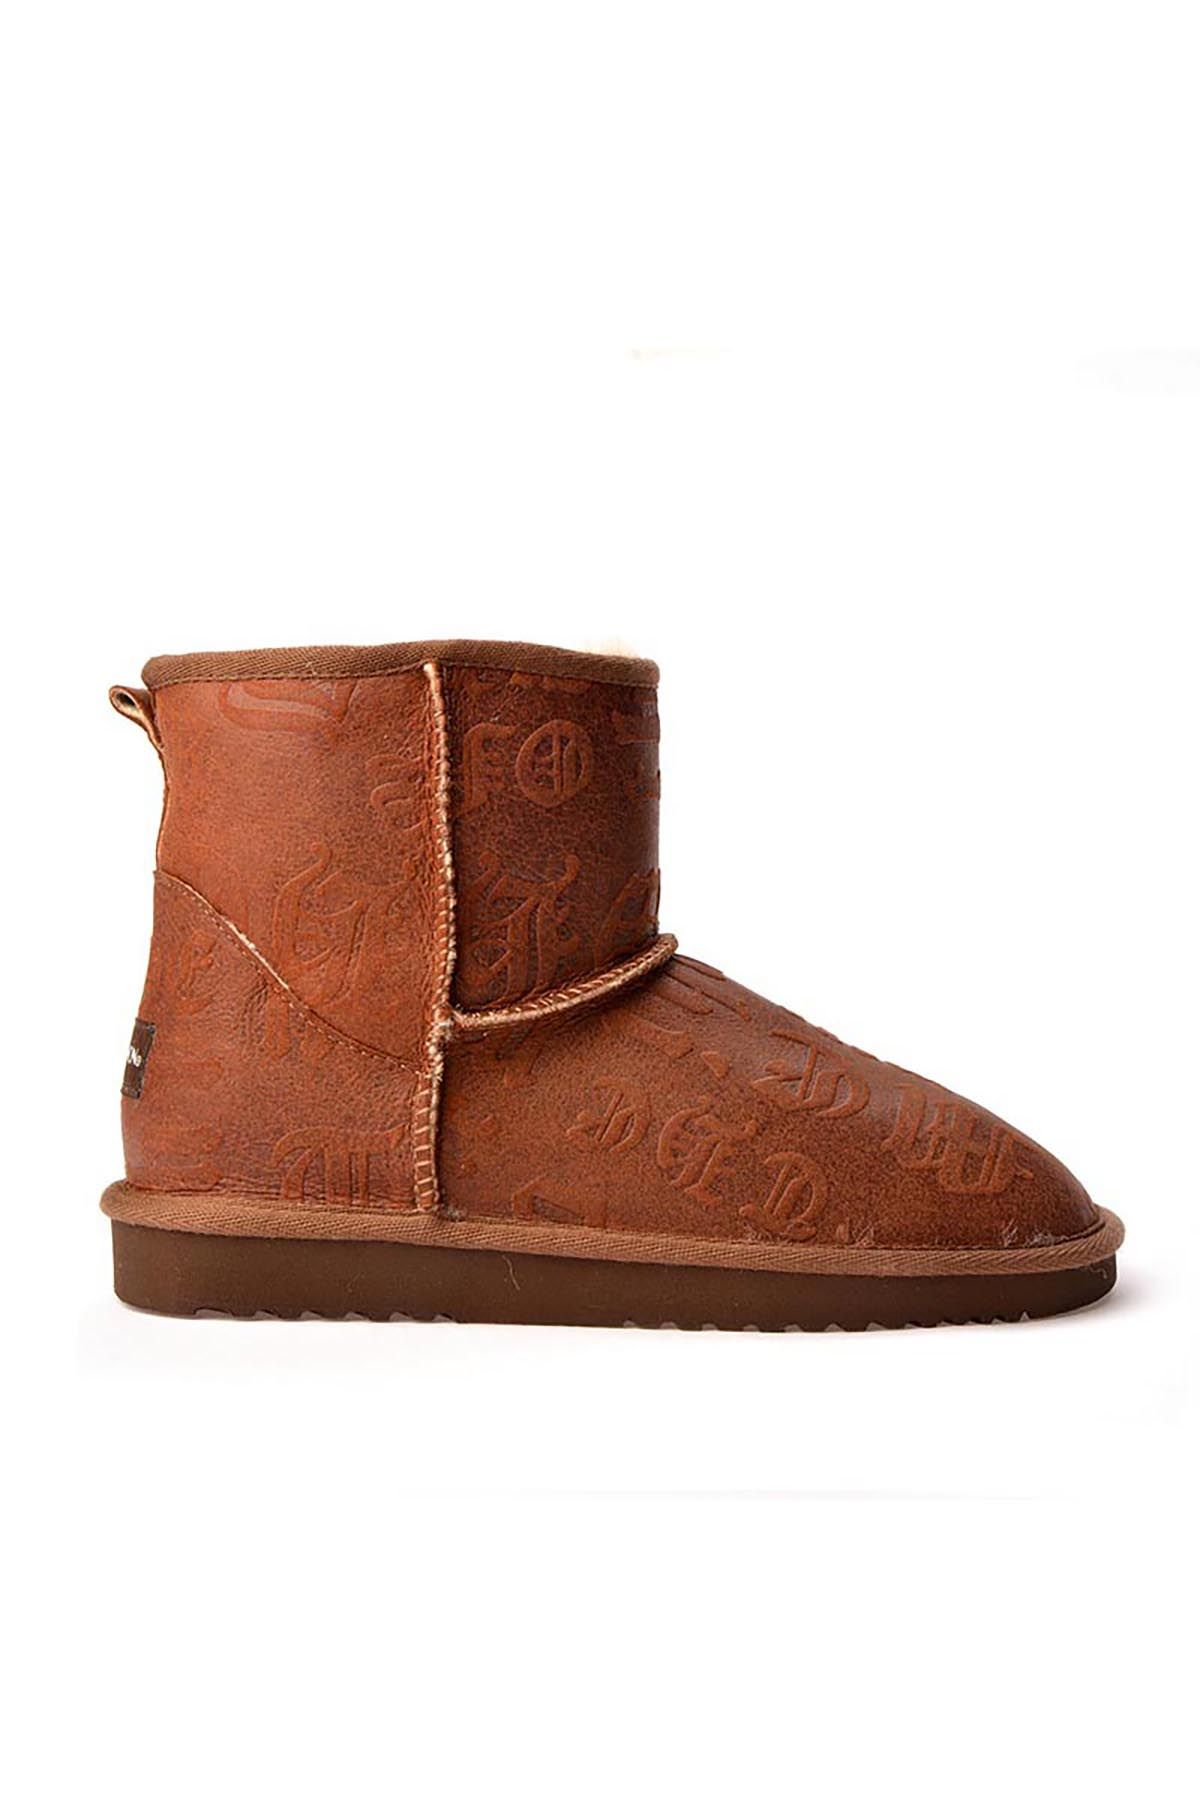 Cool Moon Women Uggs From Genuine Fur With Font Pattern Brown